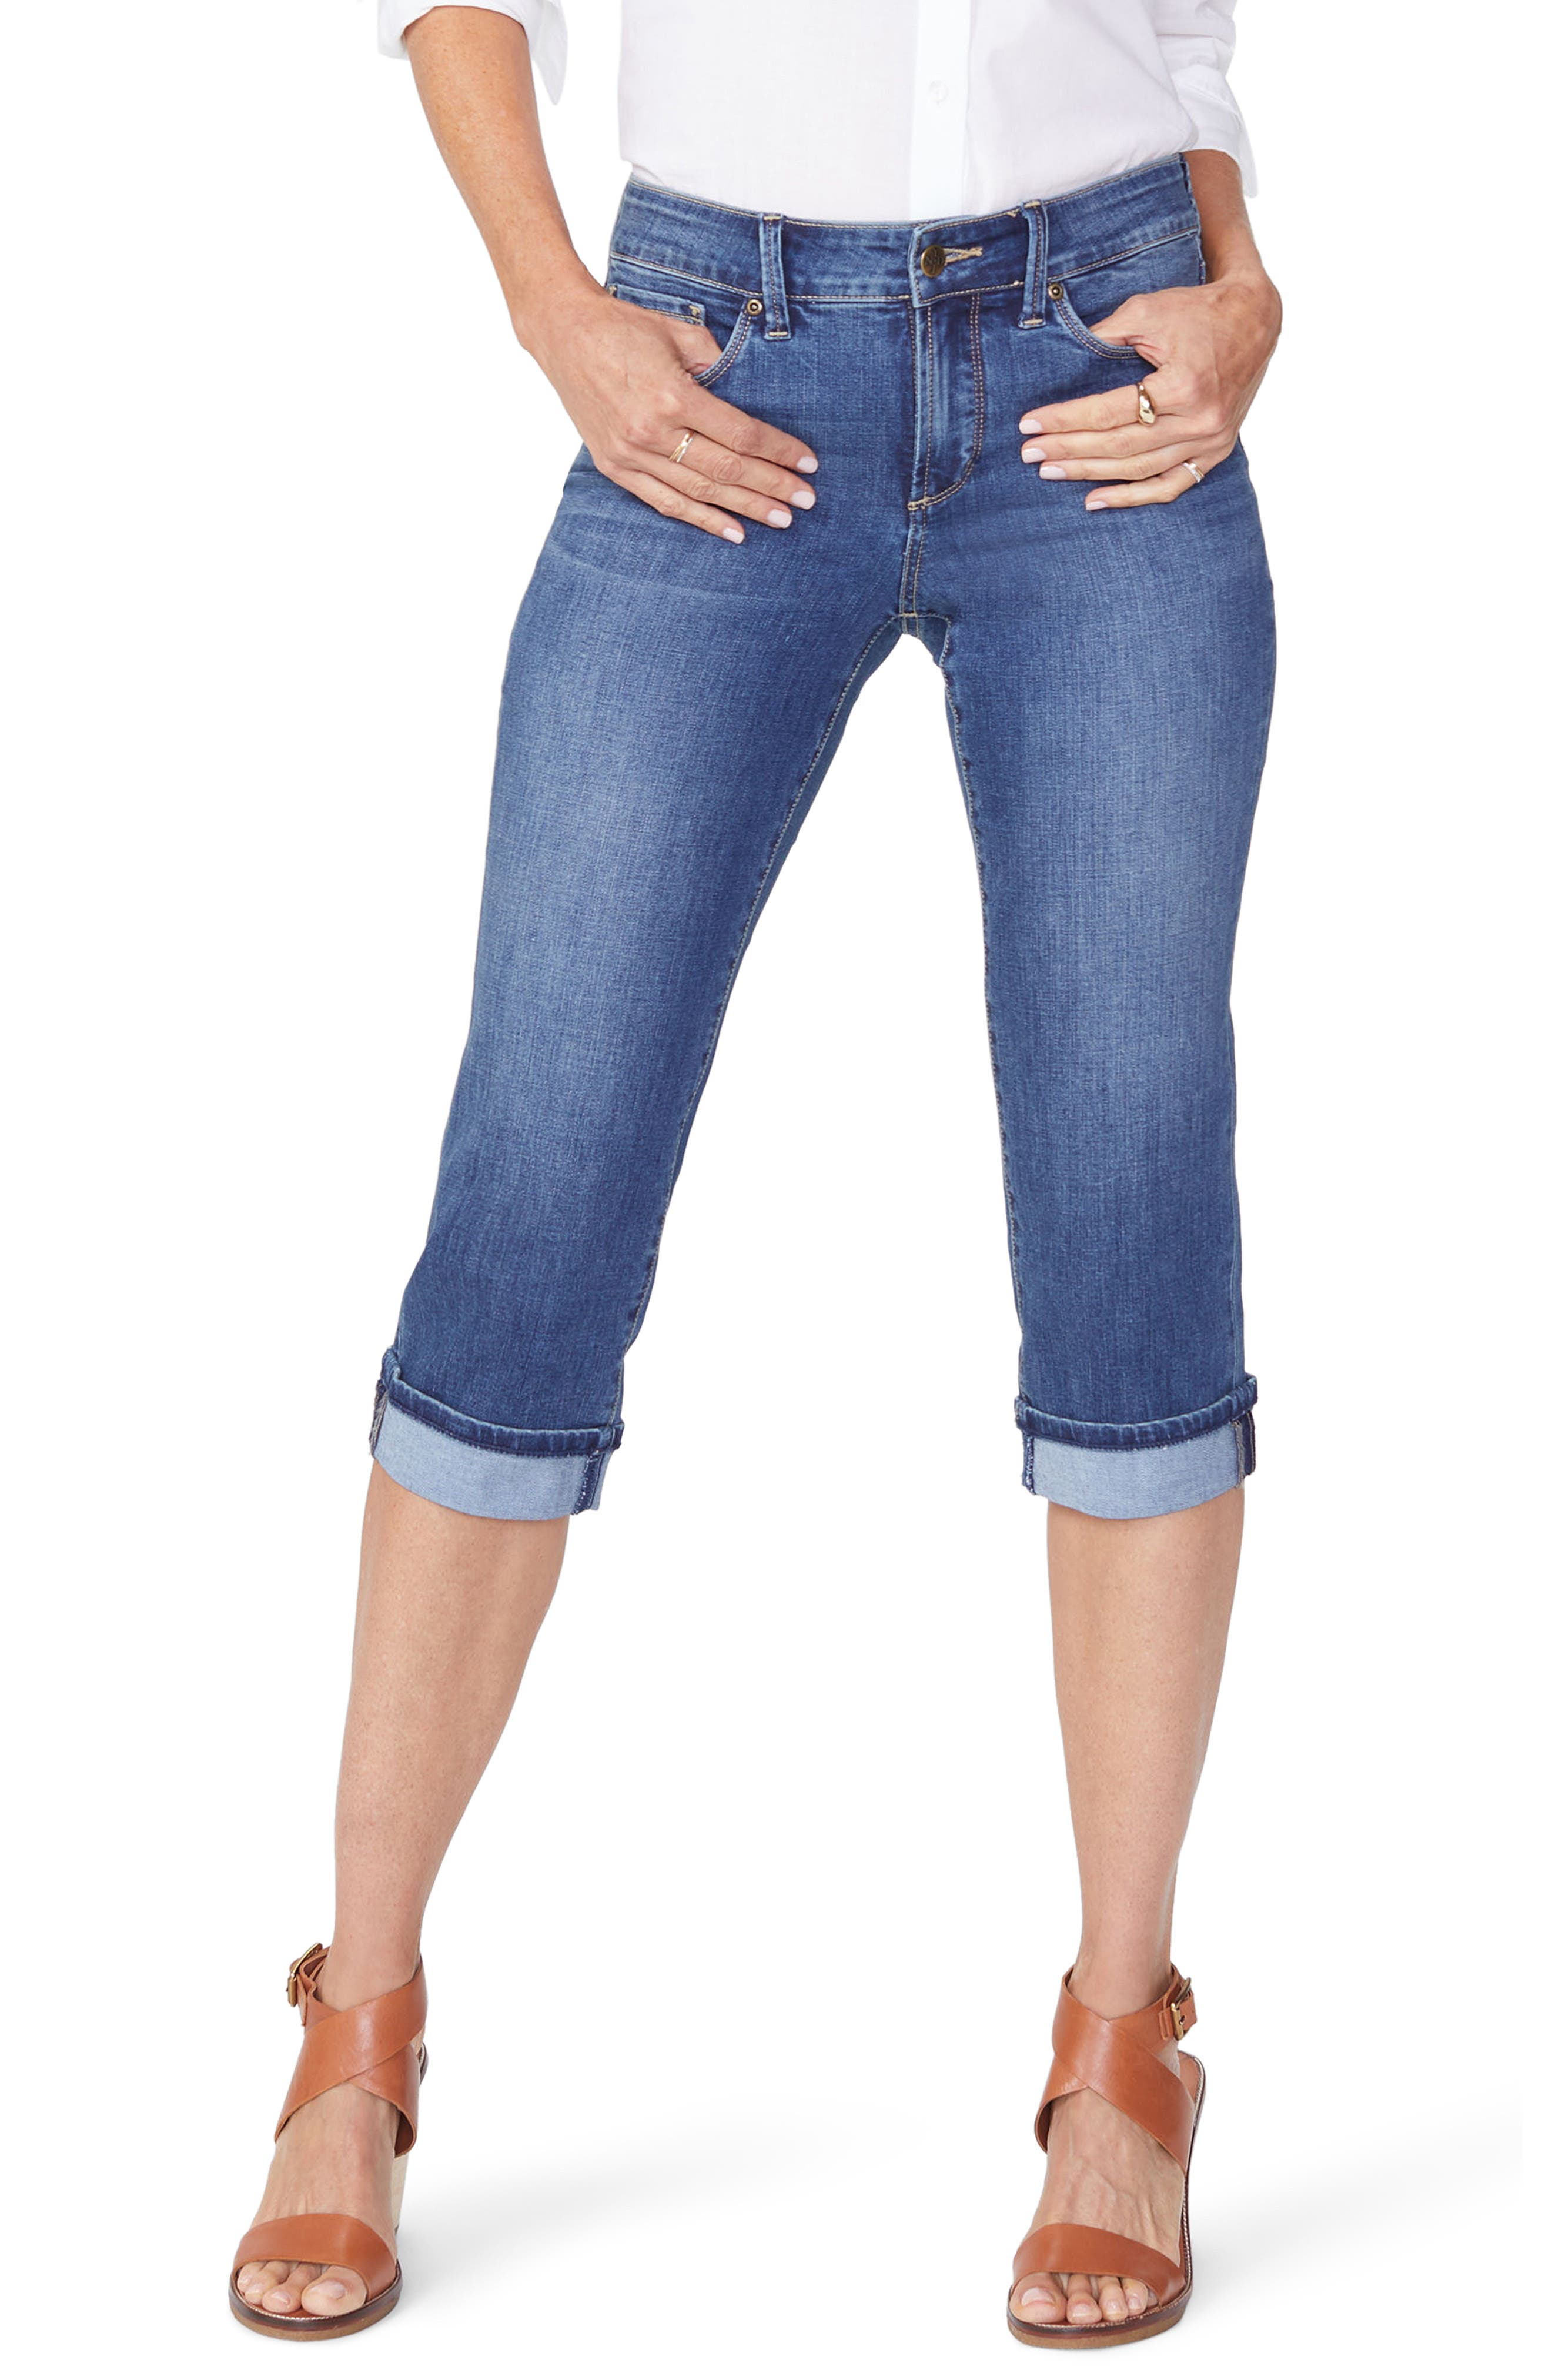 Marilyn High Waist Cuffed Stretch Crop Jeans,                             Main thumbnail 1, color,                             ZIMBALI